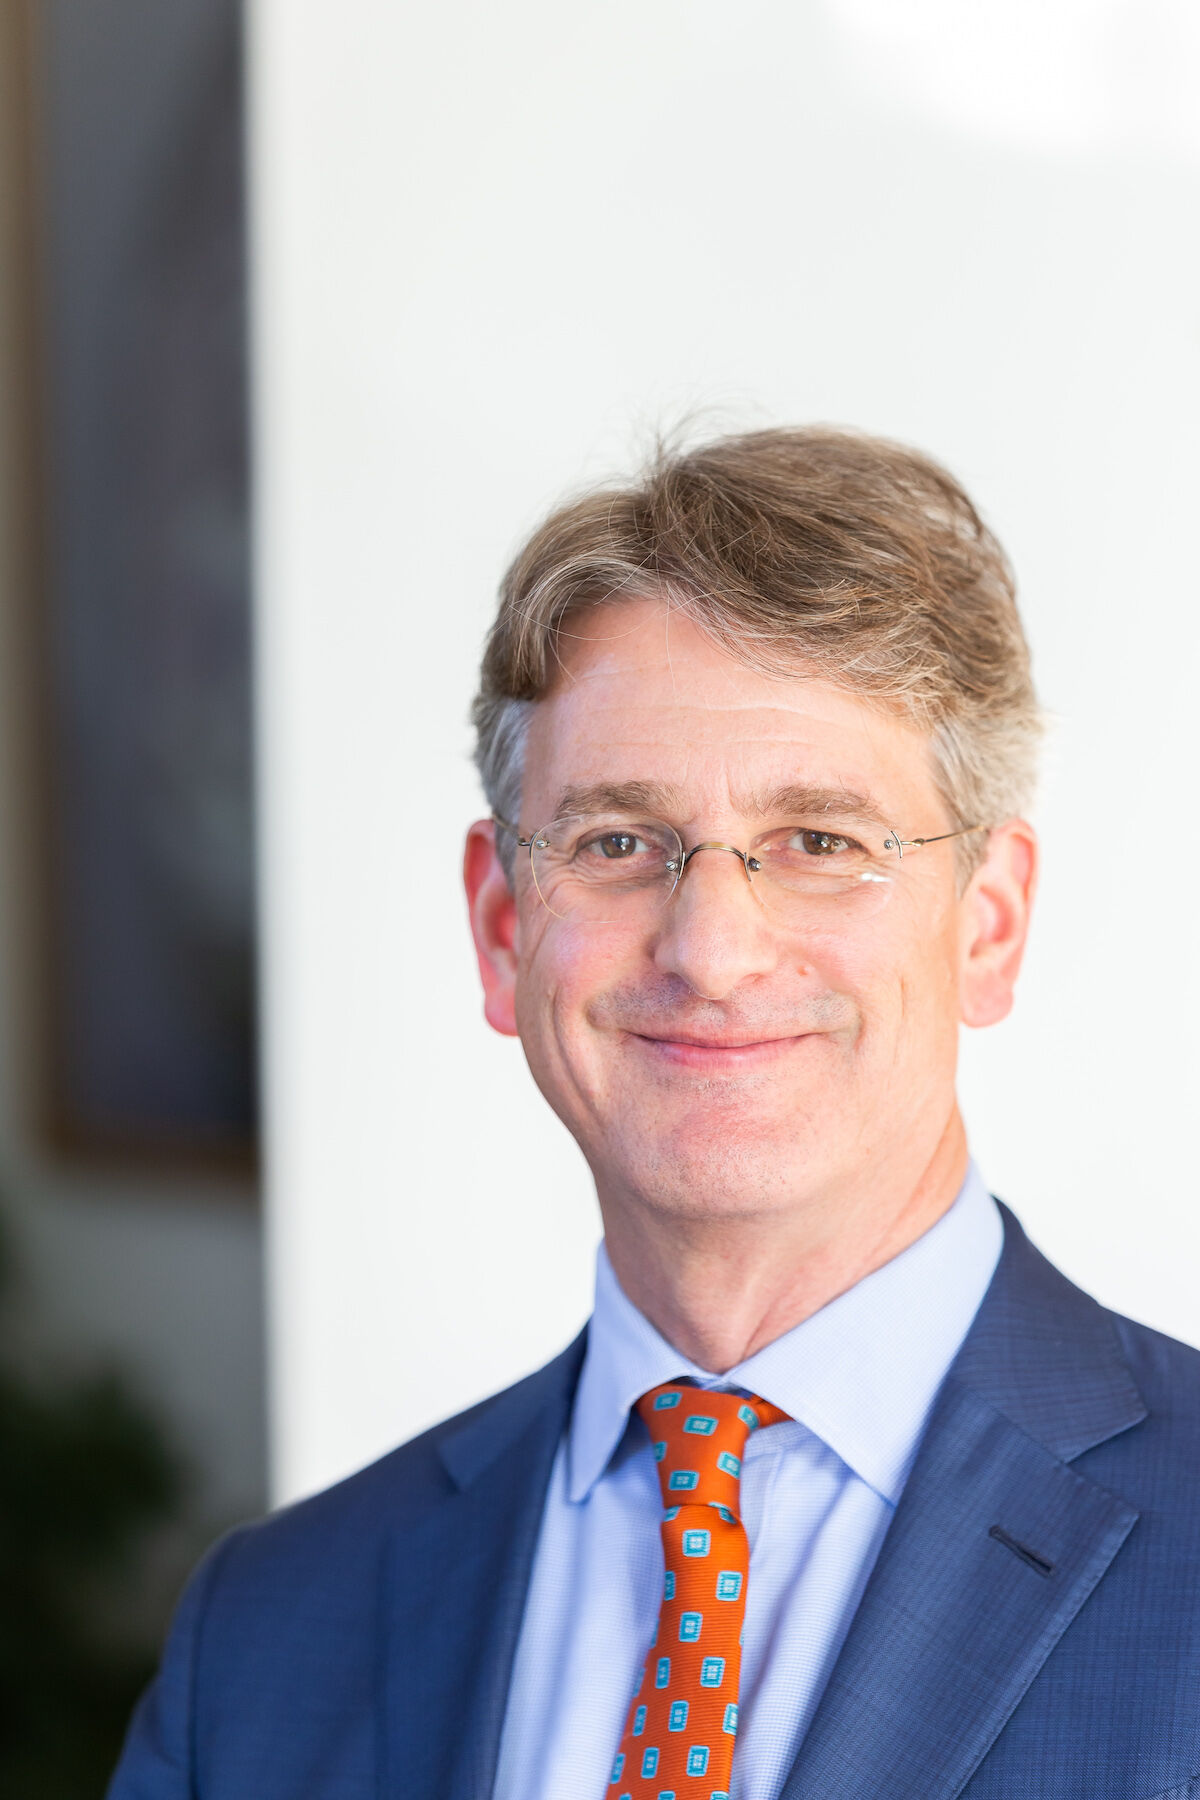 Thomas P. Campbell, Director and CEO of the Fine Arts Museums of San Francisco. Photo © Scott Rudd, courtesy Fine Arts Museums of San Francisco.